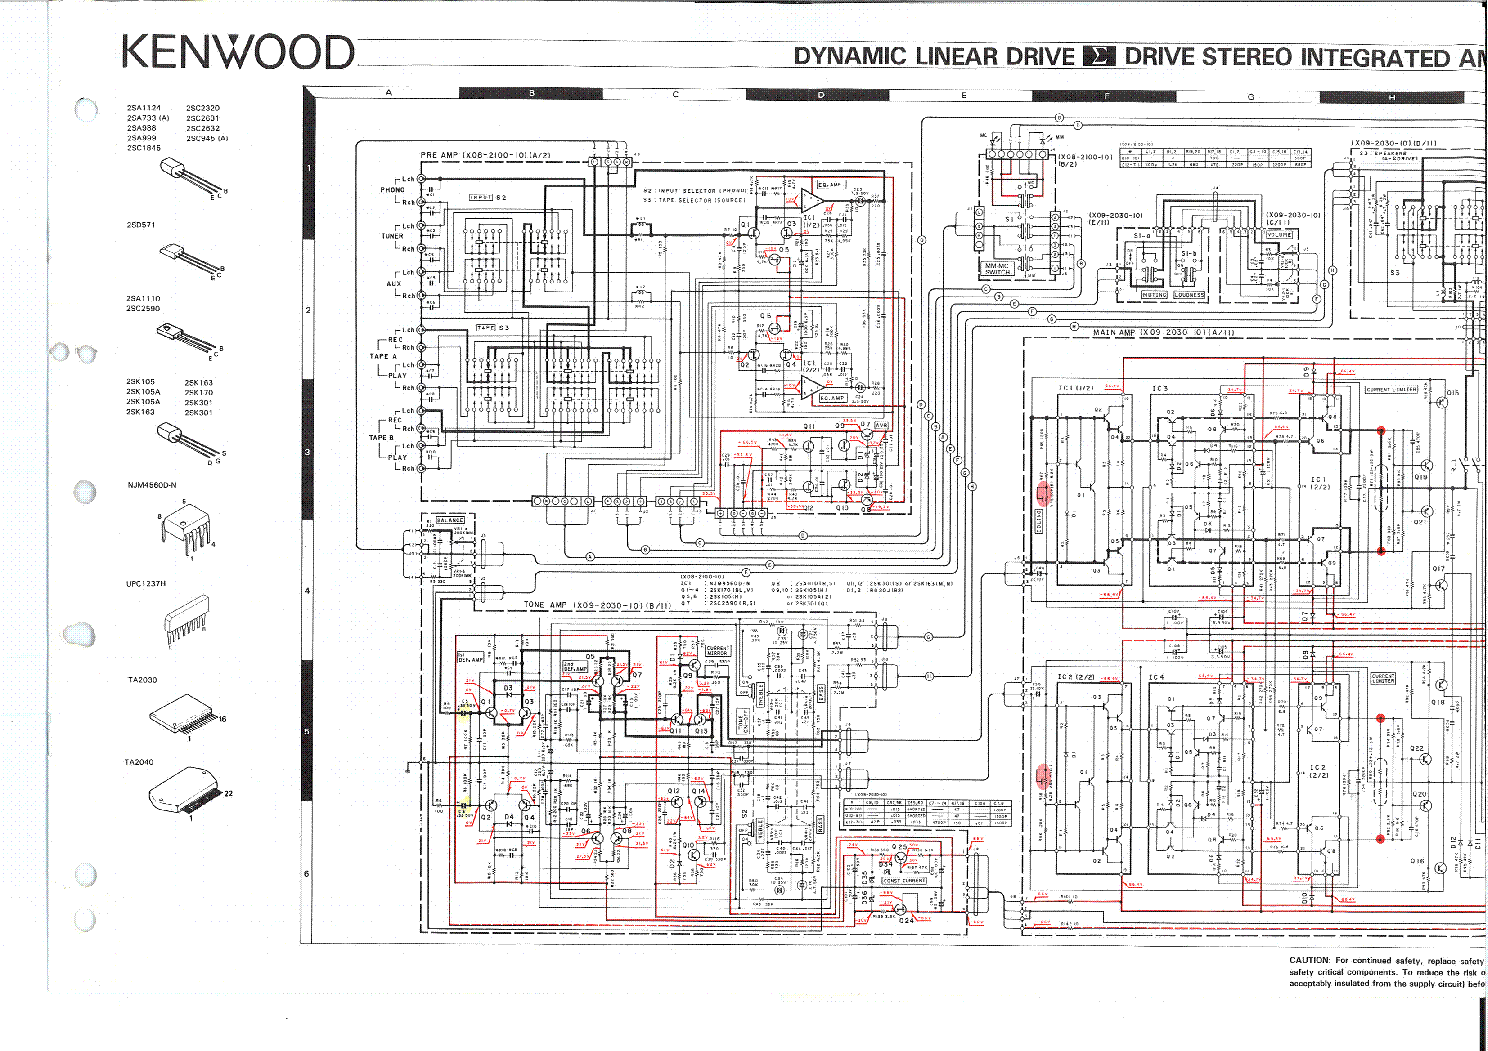 KENWOOD KA-770 SCH Service Manual download, schematics